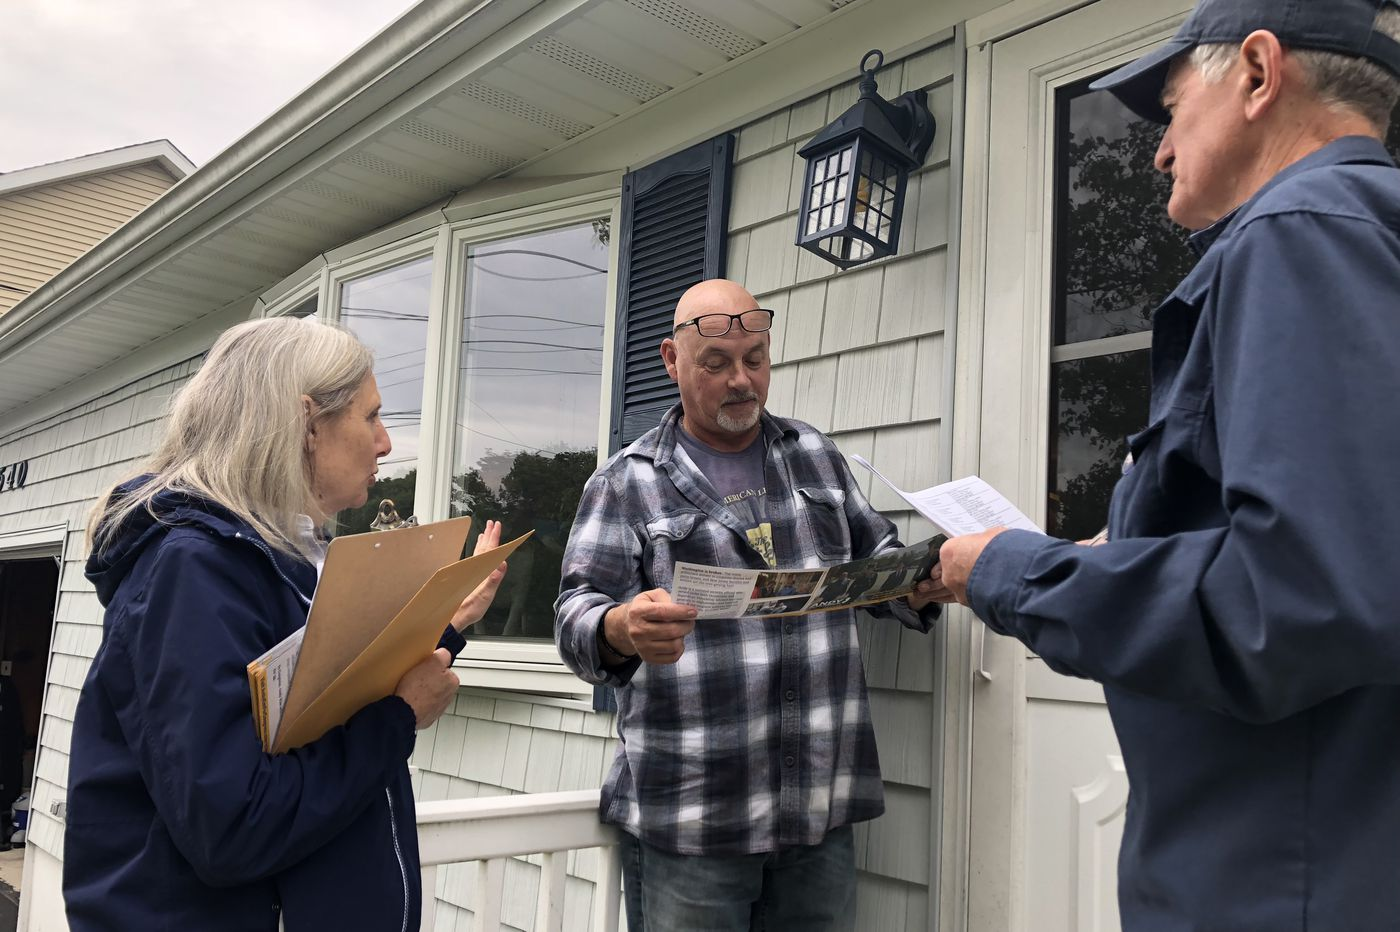 Political canvassers take to the streets, Eagles give up lead to Panthers | Morning Newsletter